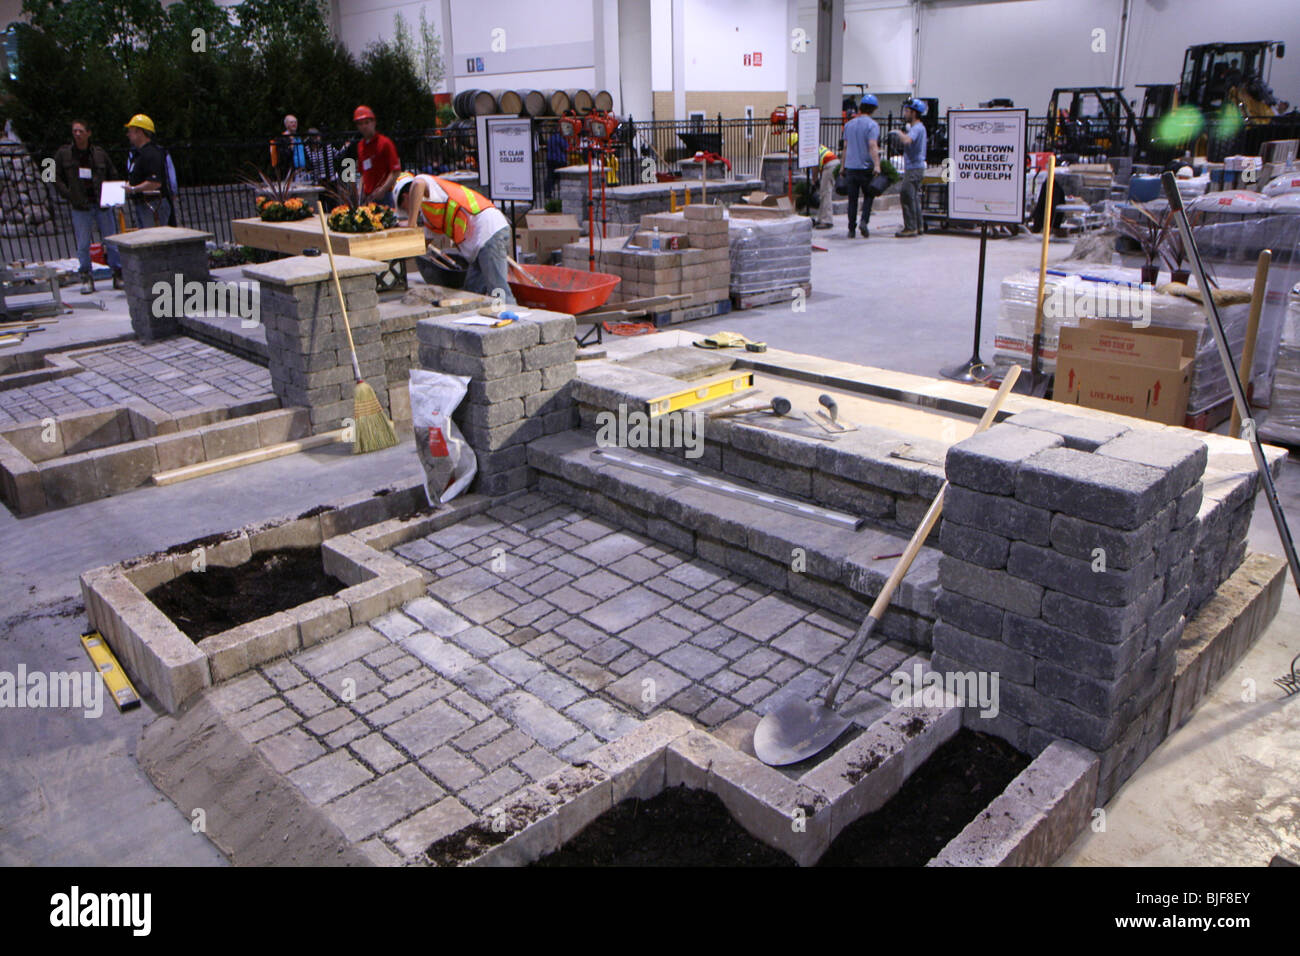 landscape demo students bricks shuffle stone material patio soil competition - Stock Image